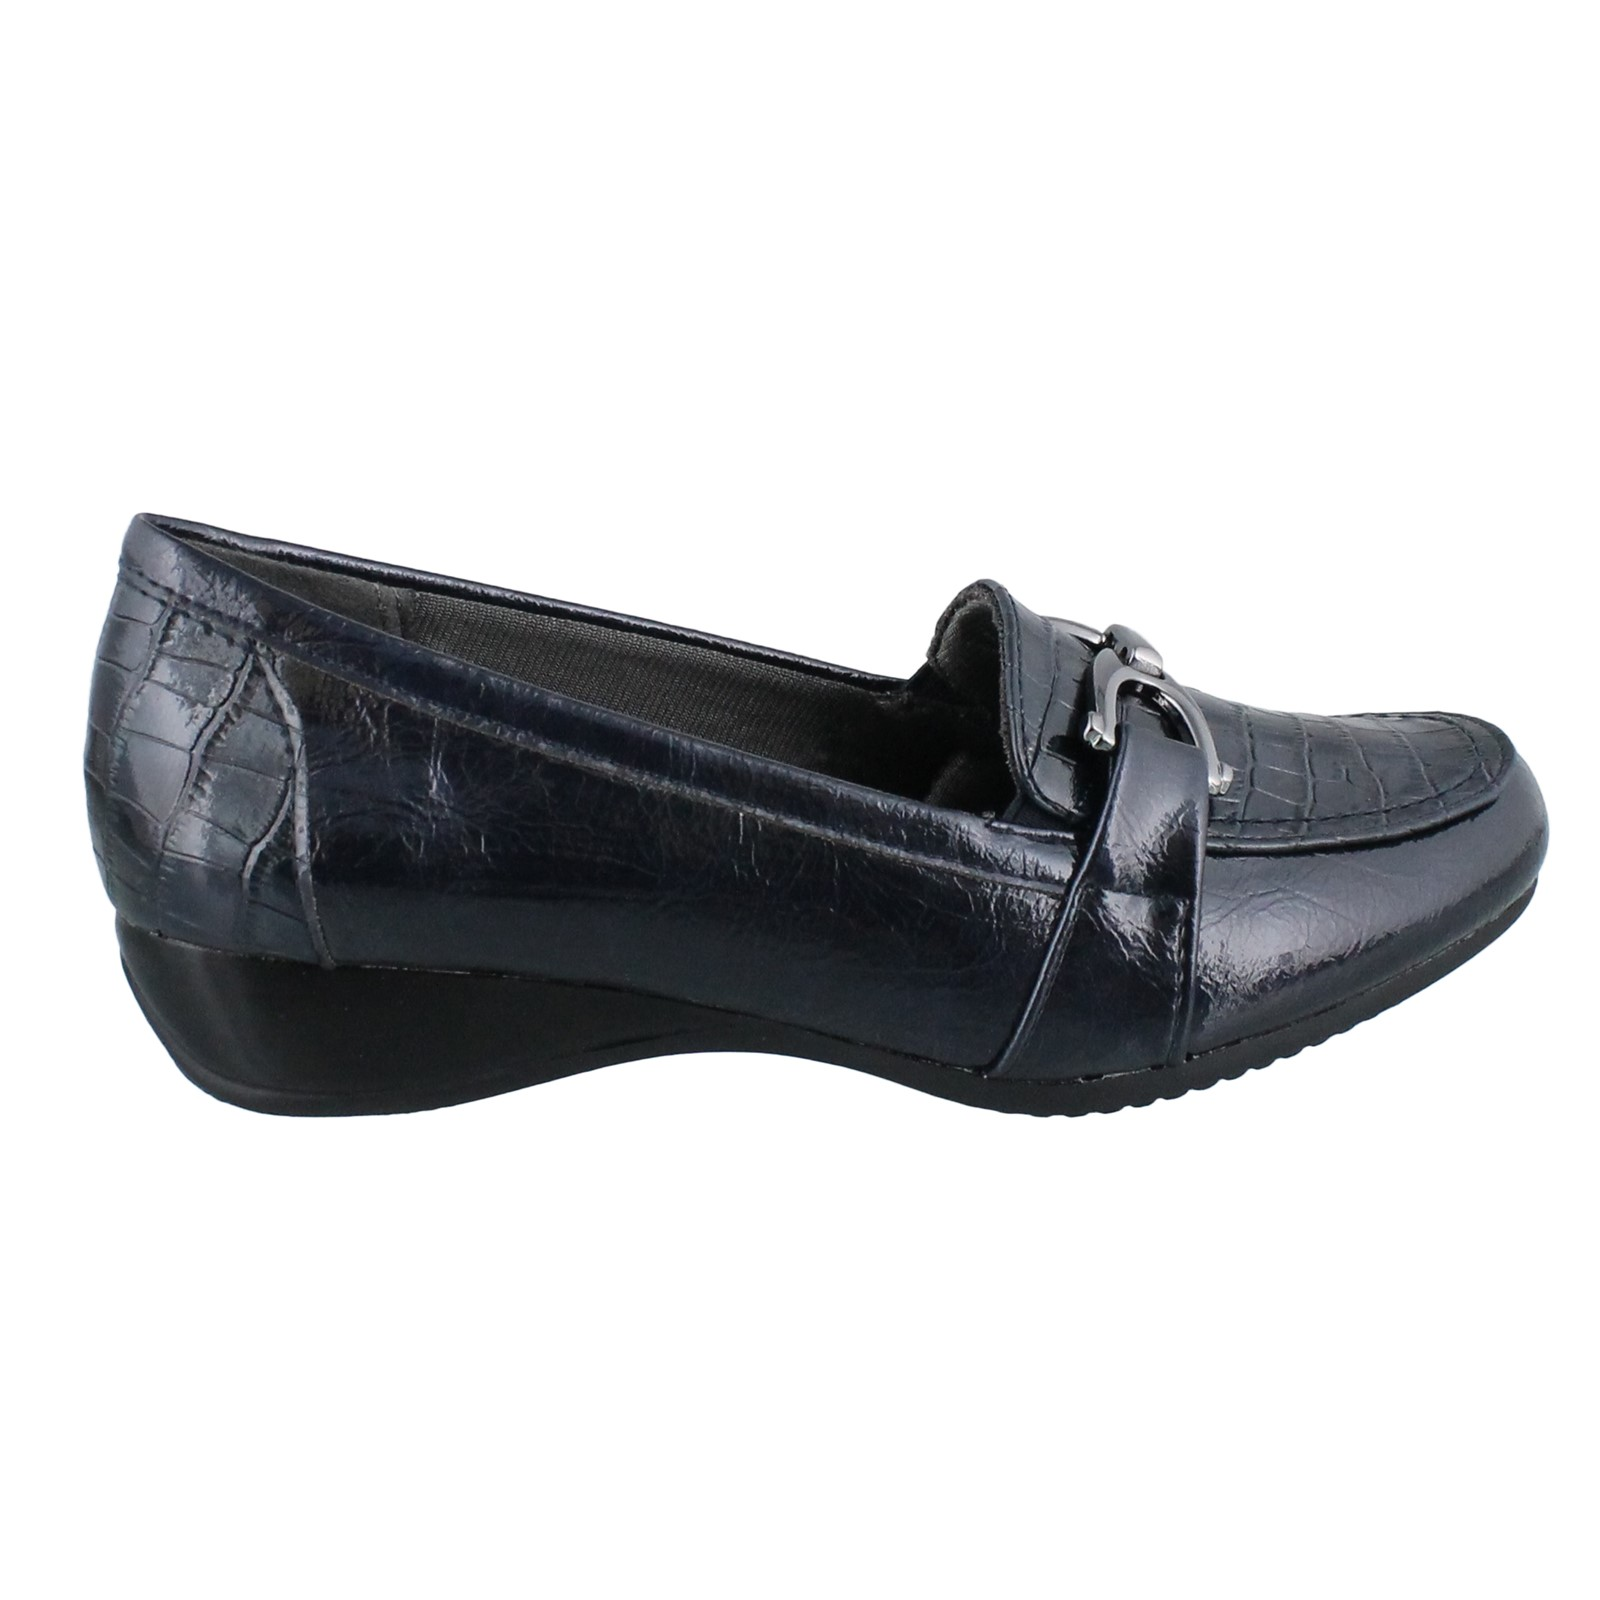 Women's Lifestride, Dempsey Slip on Loafer